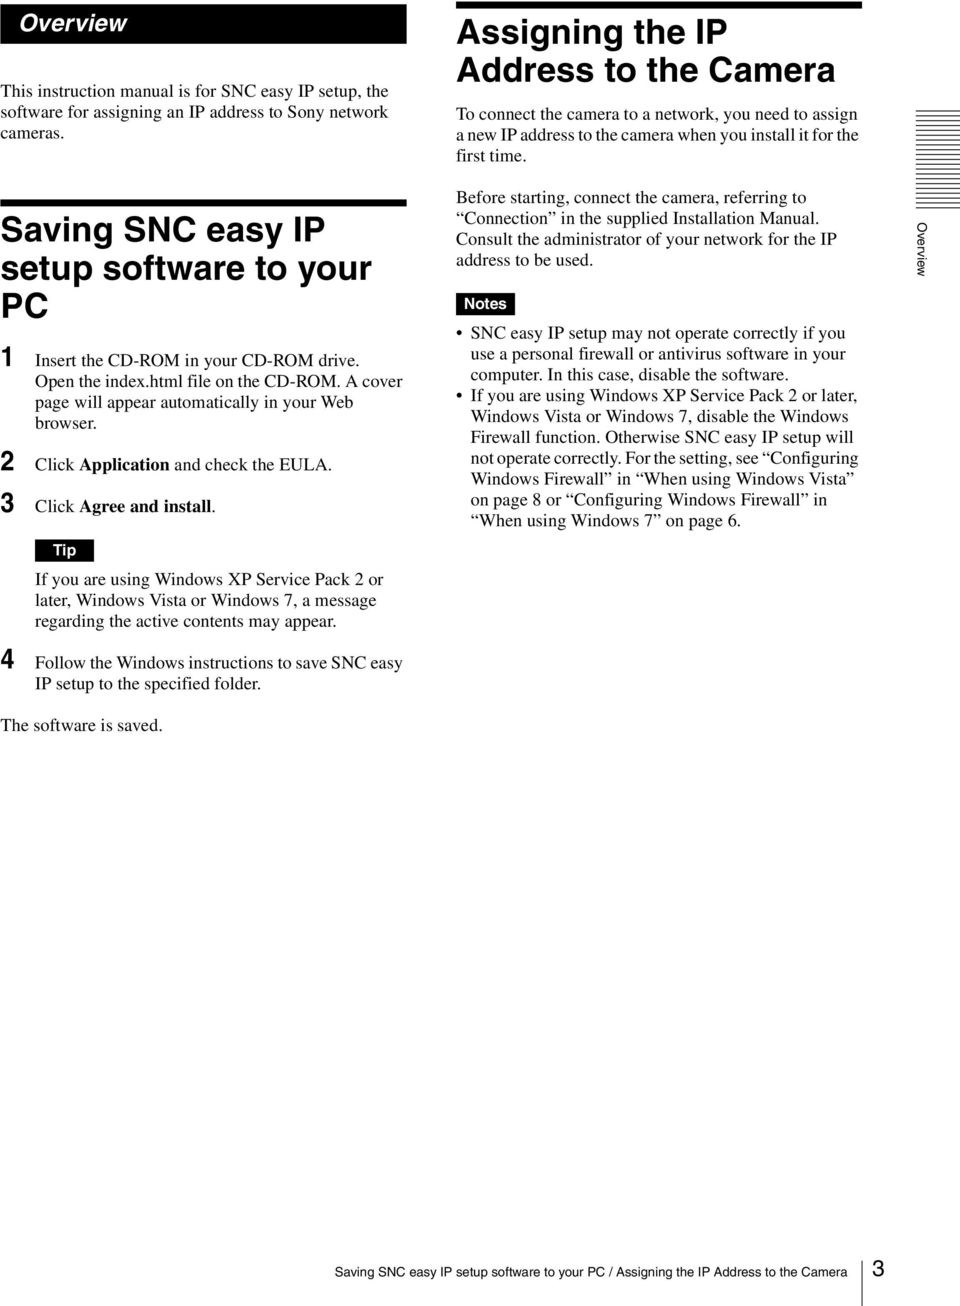 Saving SNC easy IP setup software to your PC 1 Insert the CD-ROM in your CD-ROM drive. Open the index.html file on the CD-ROM. A cover page will appear automatically in your Web browser.